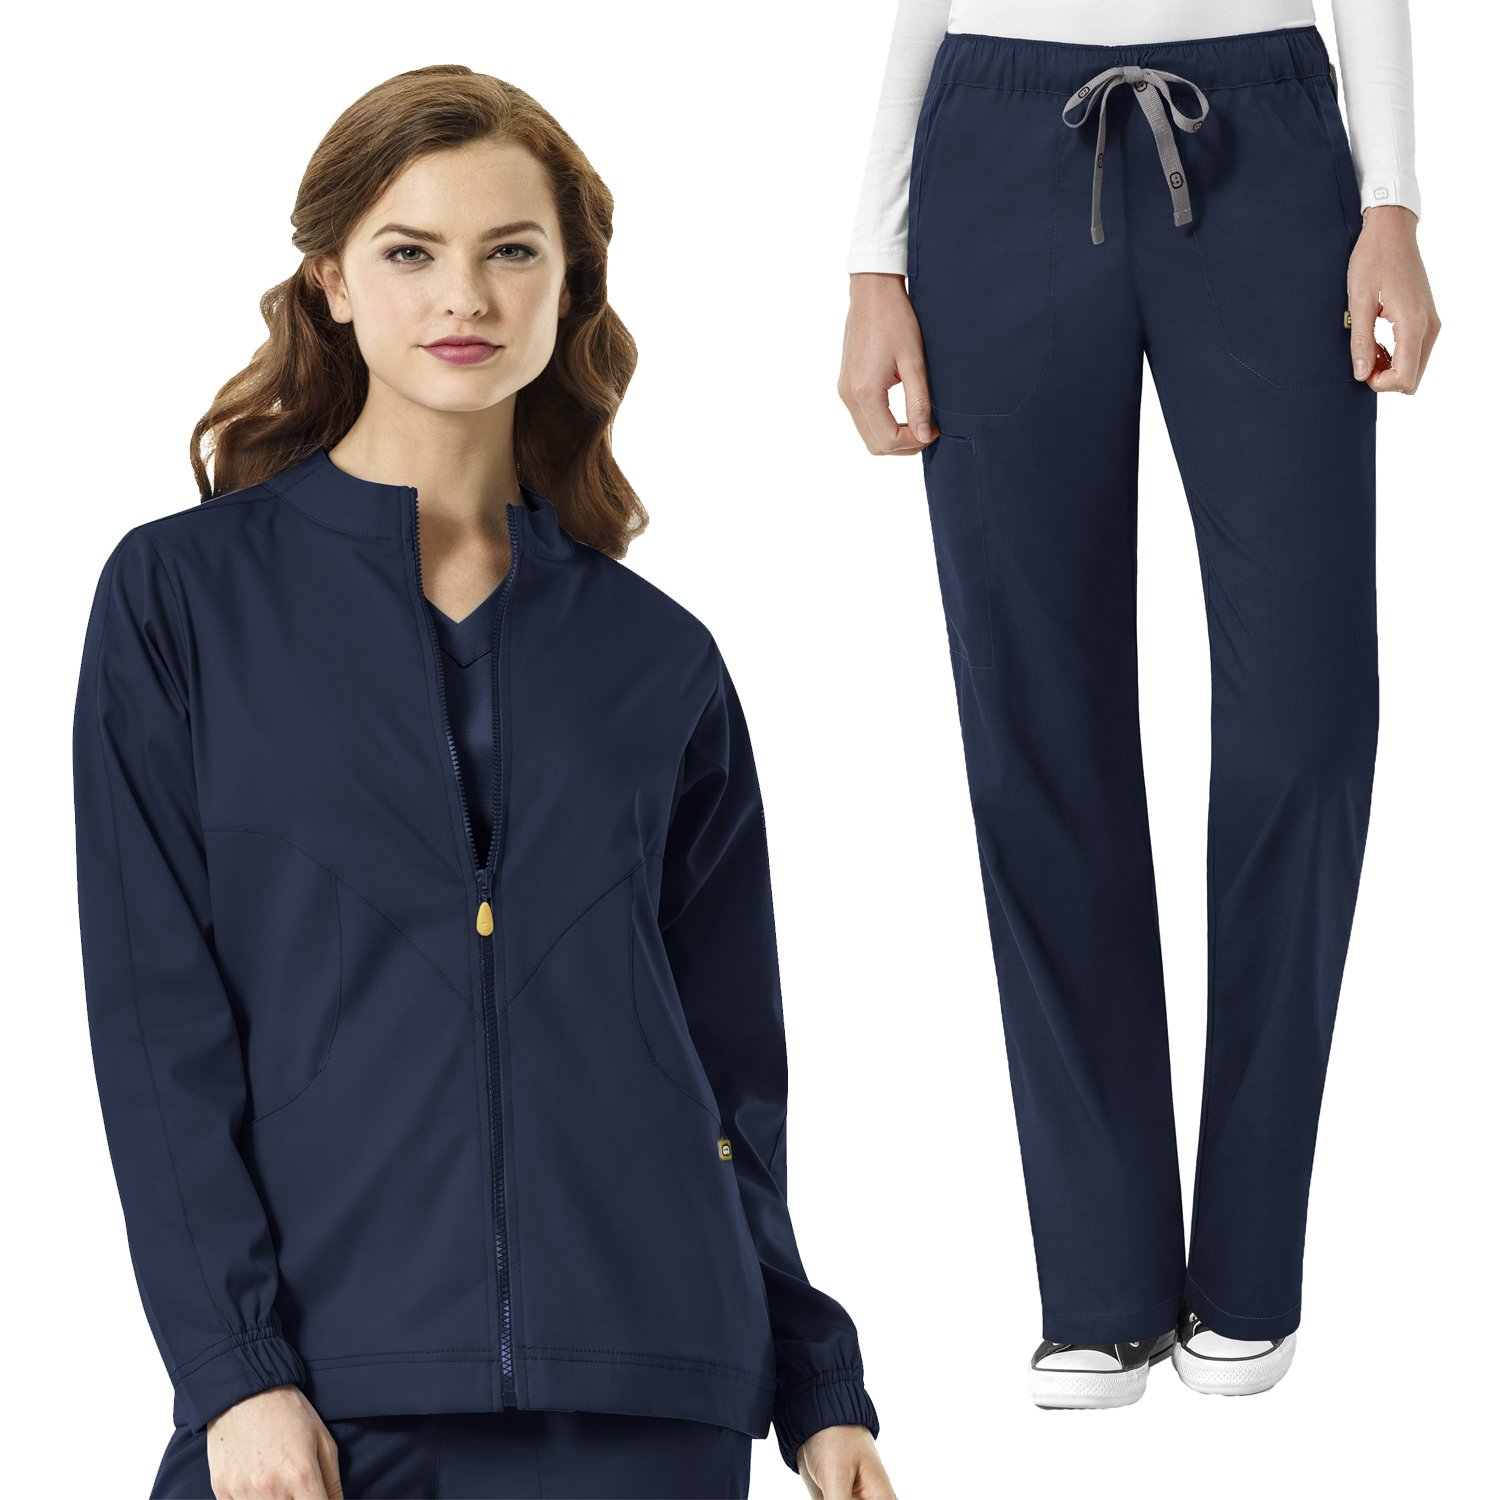 WonderWink Next Women's Boston Zip Front Warm Up Scrub Jacket & Drawstring Cargo Pant Set + FREE GIFT